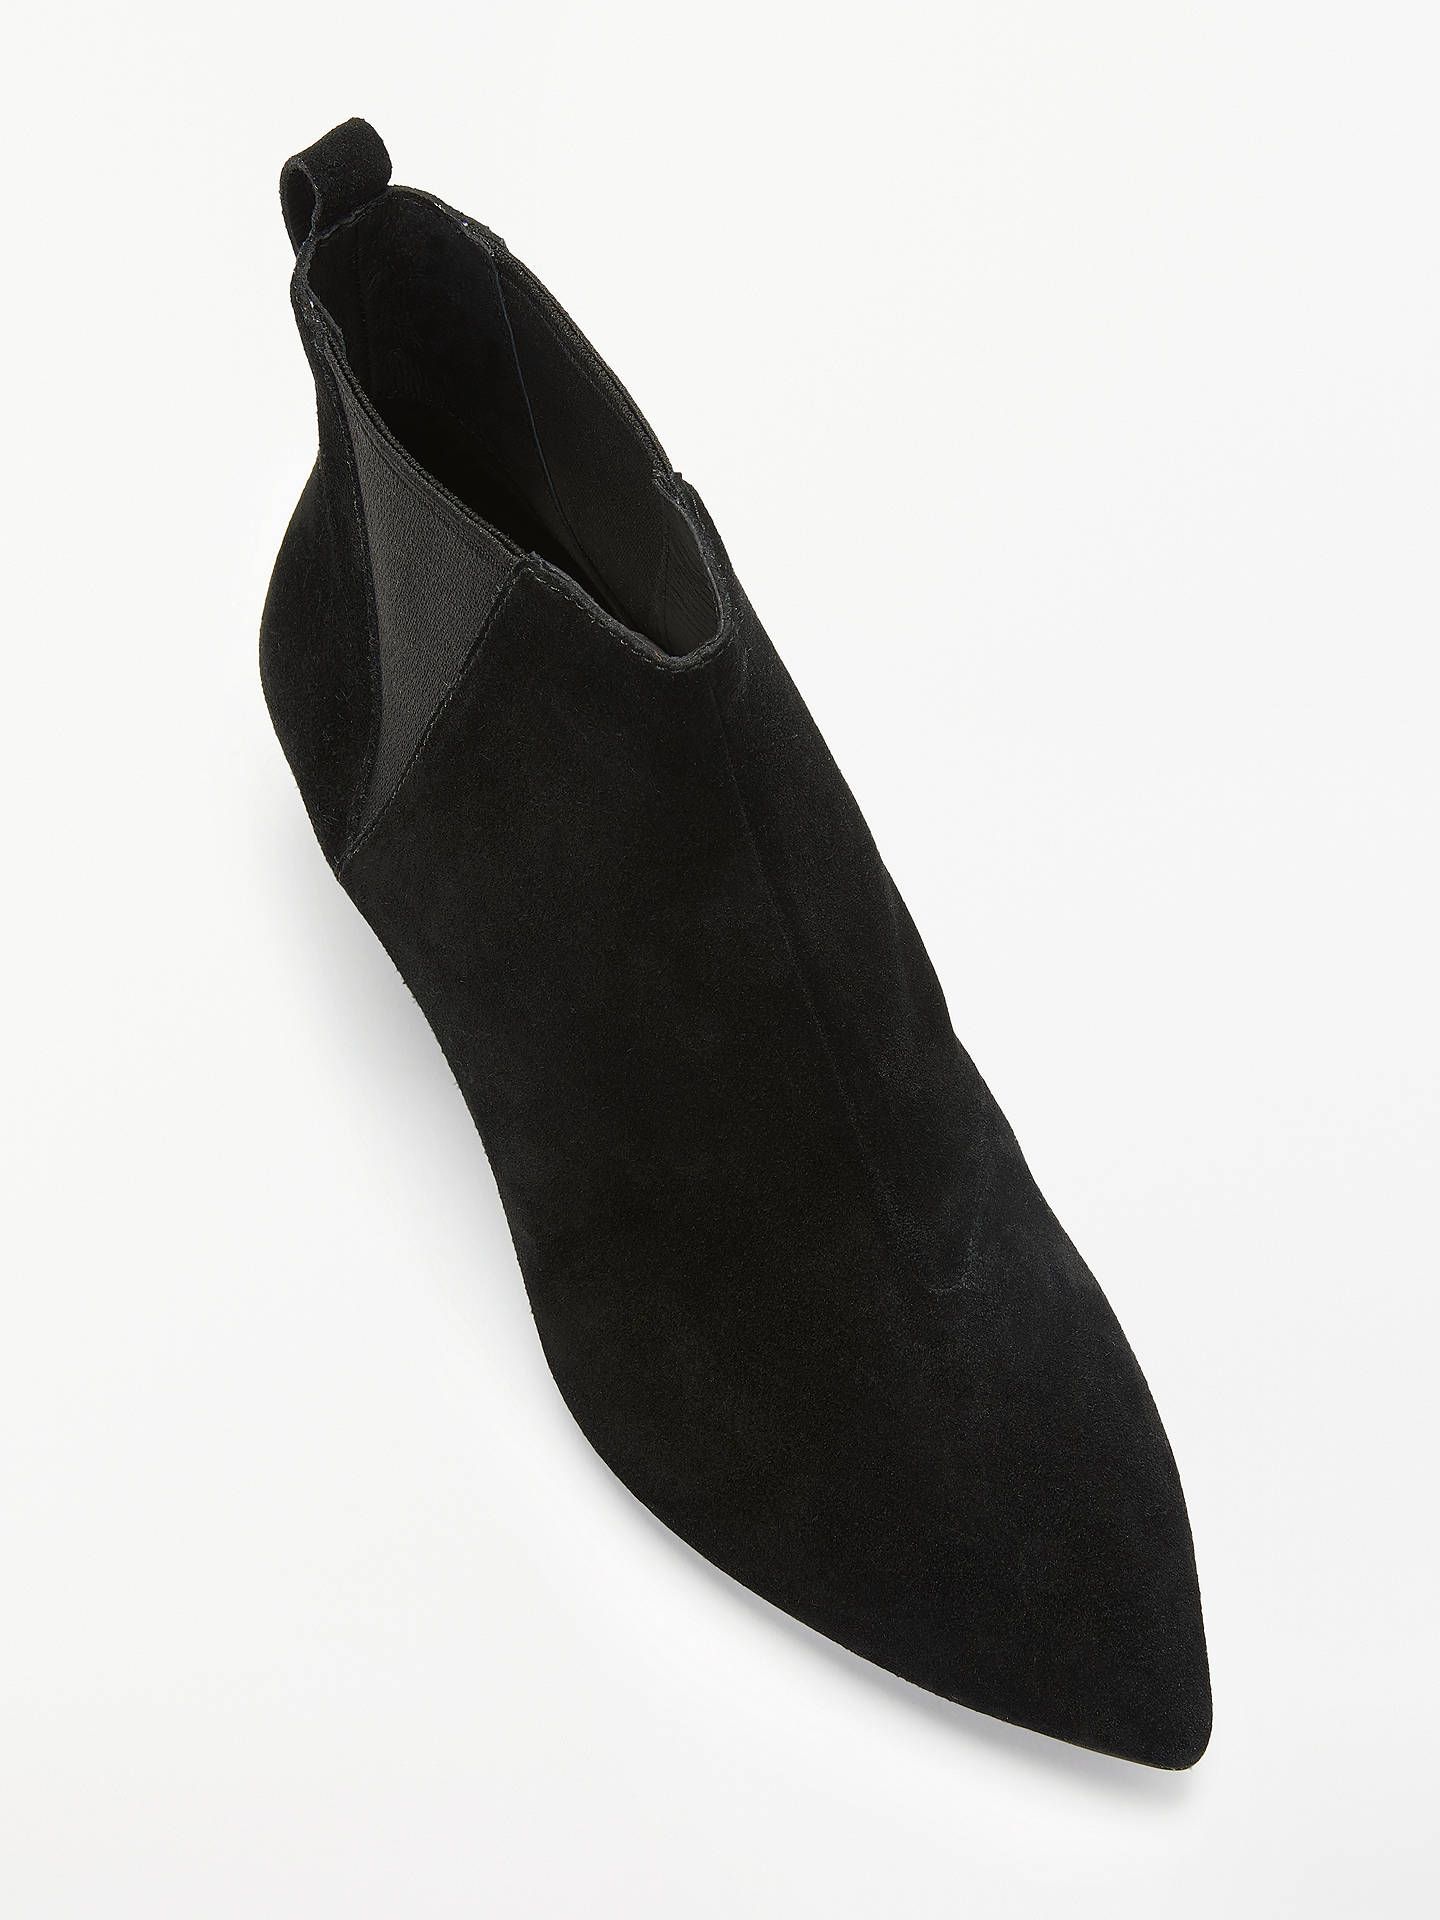 7403b2e6872 Ash Cosmos Cone Heel Ankle Boots, Black Suede at John Lewis & Partners